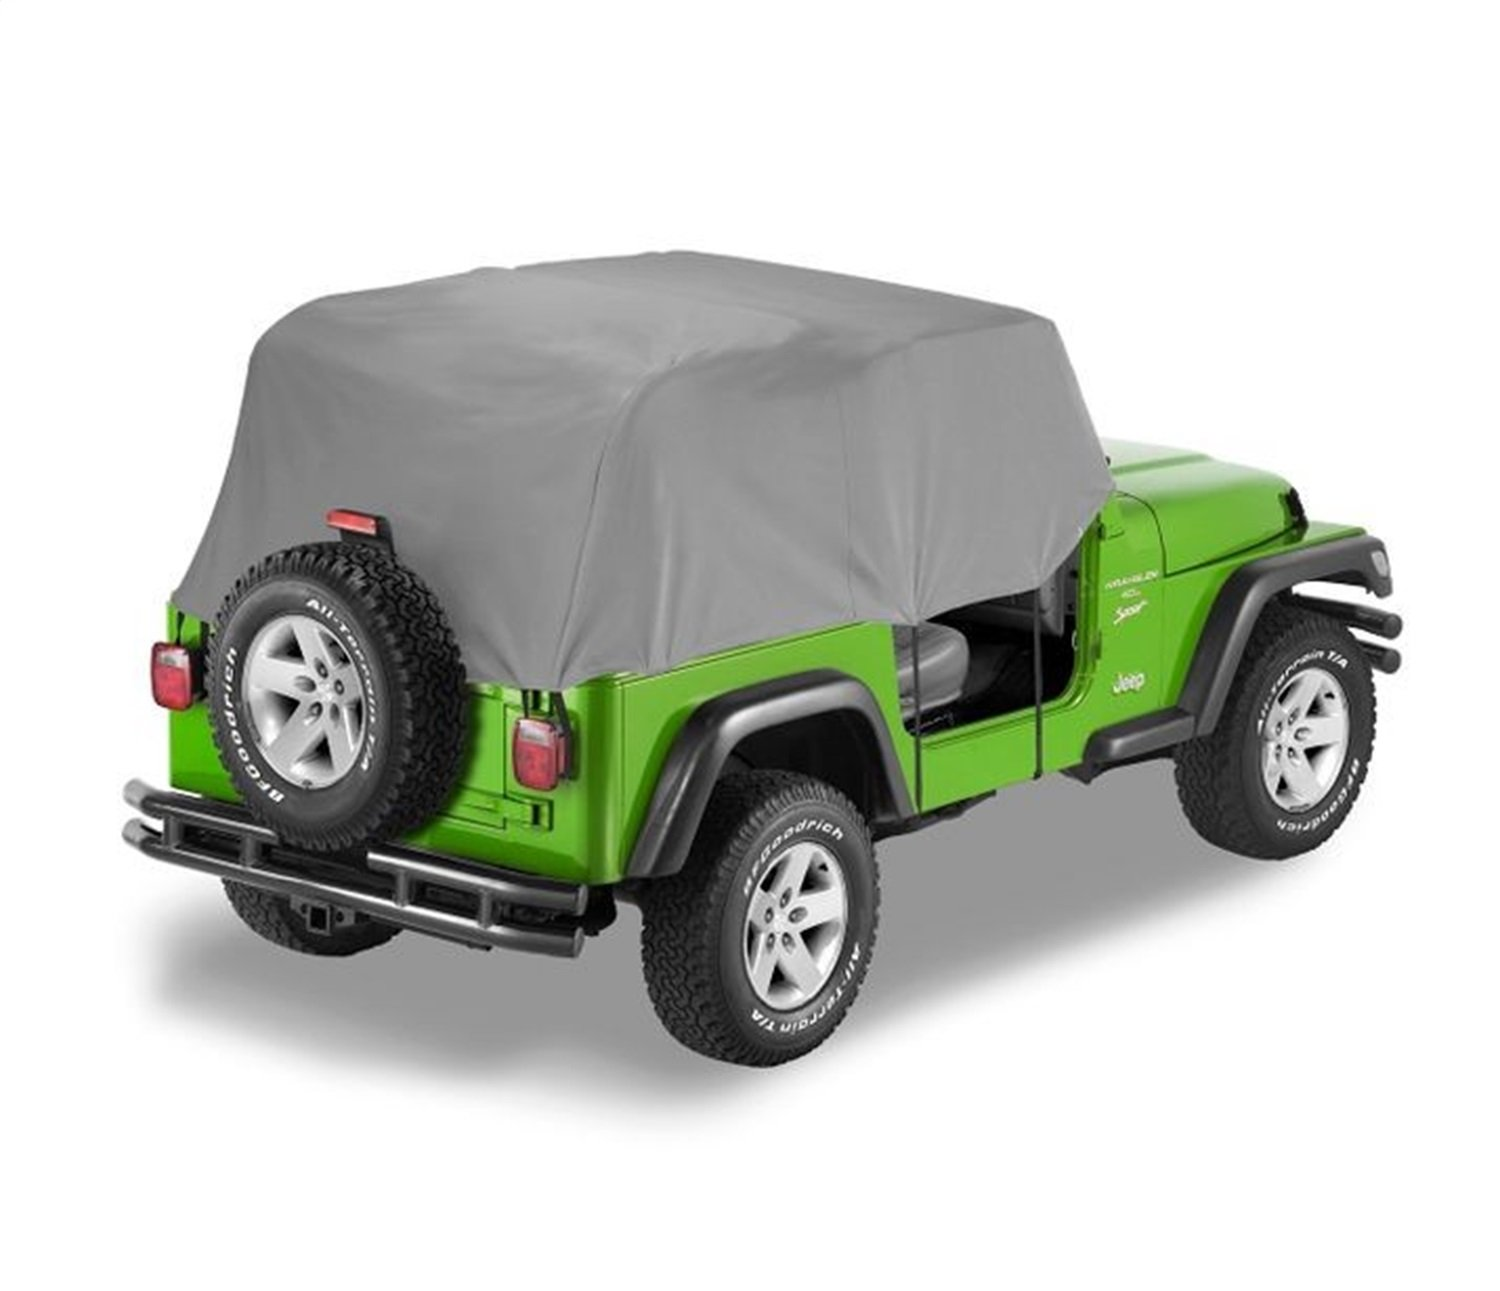 Bestop 81036-09 Charcoal All Weather Trail Cover for 1992-1995 Wrangler YJ